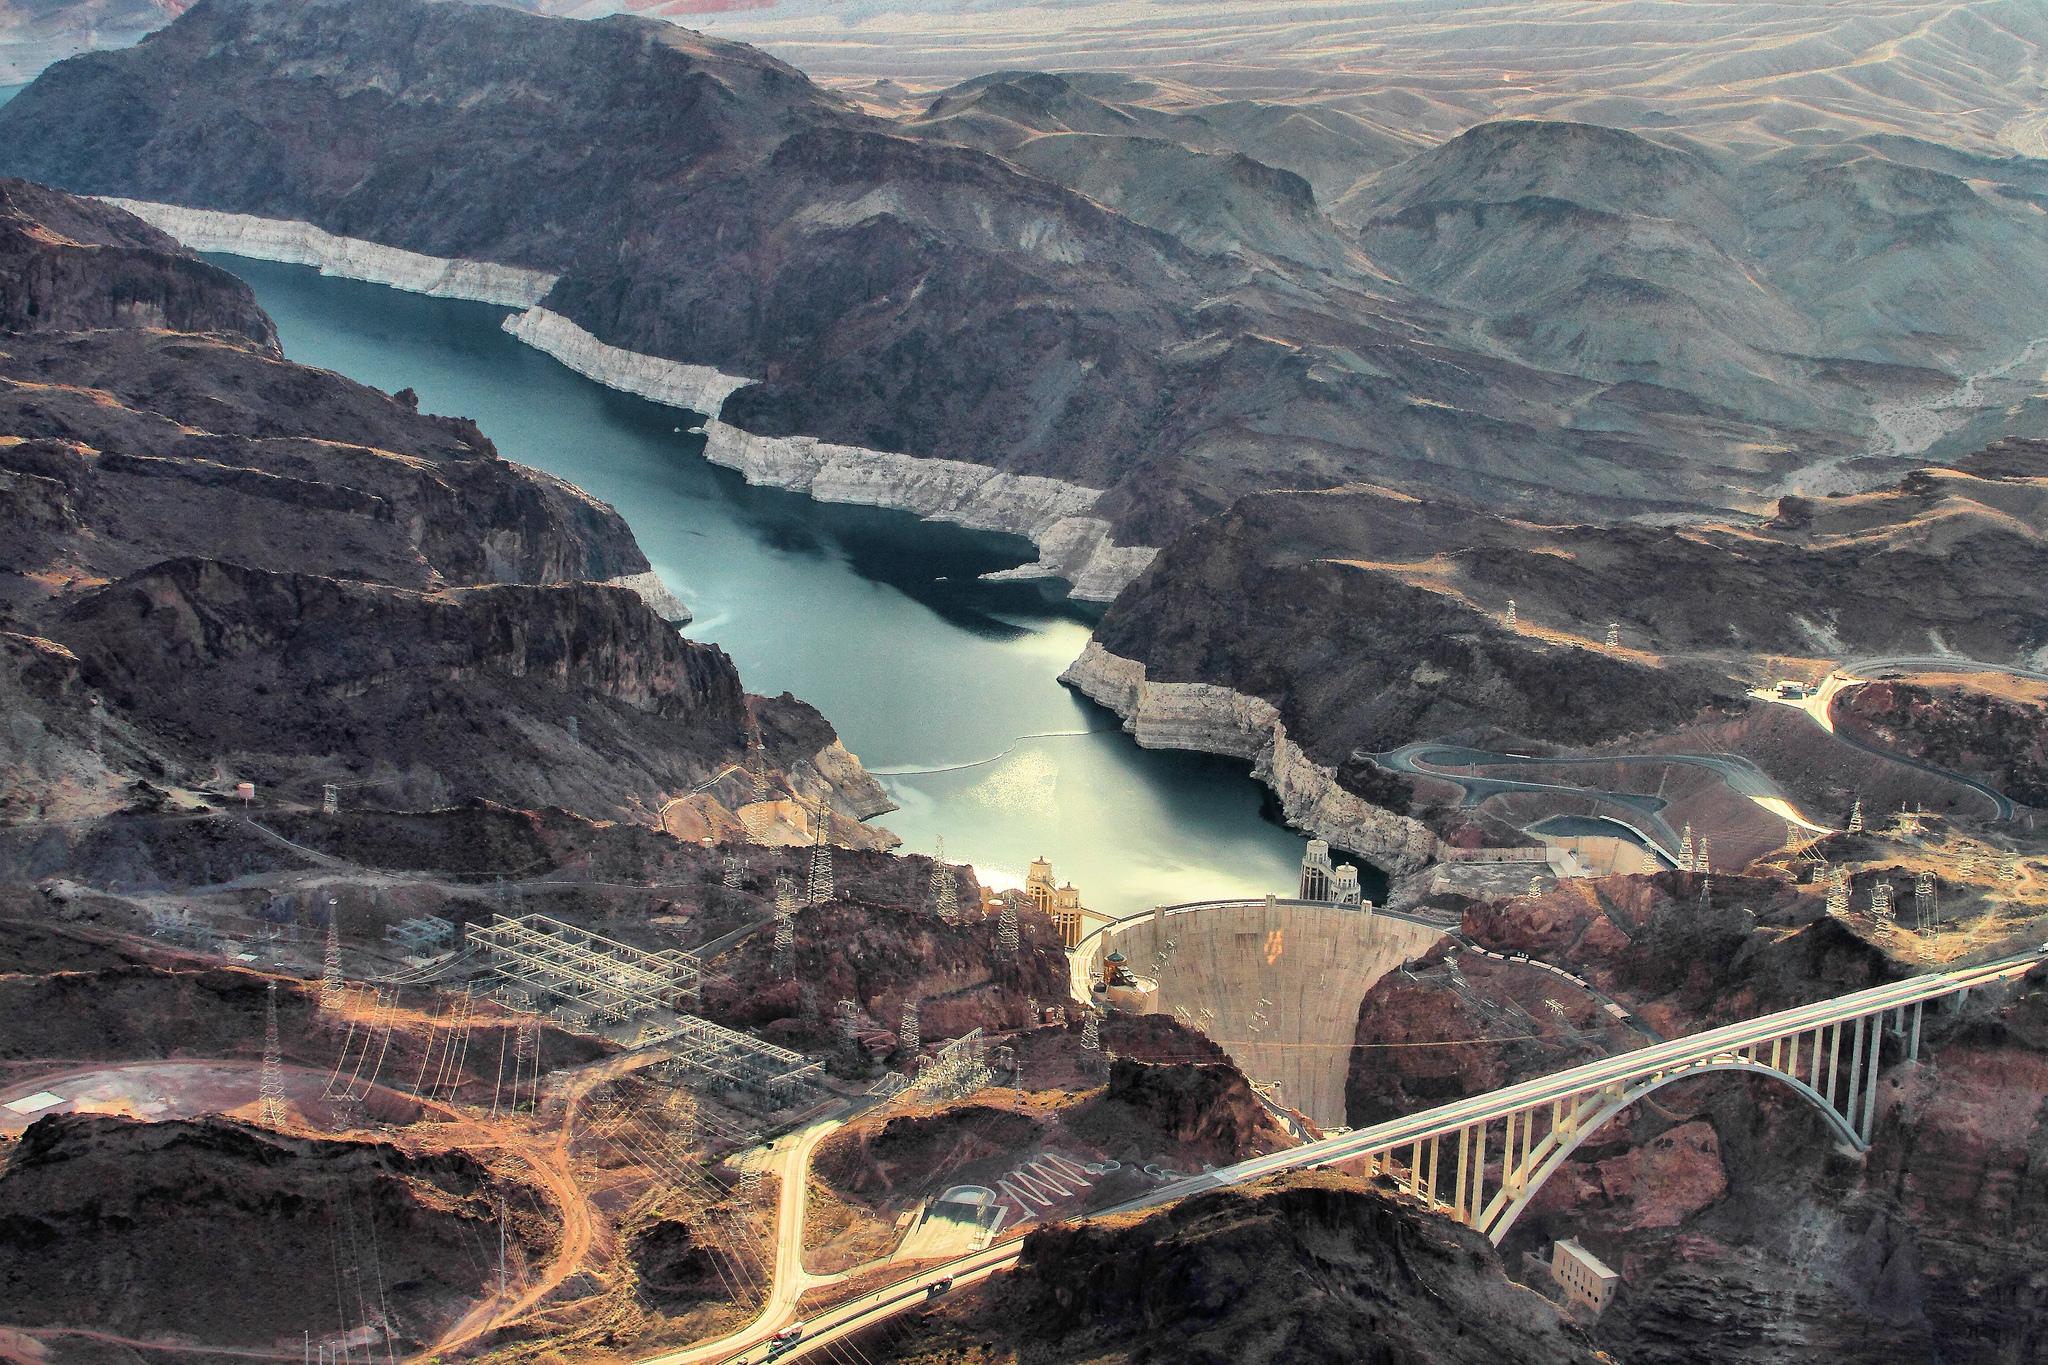 """Hoover Dam"" by Airwolfhound via Flickr Creative Commons"